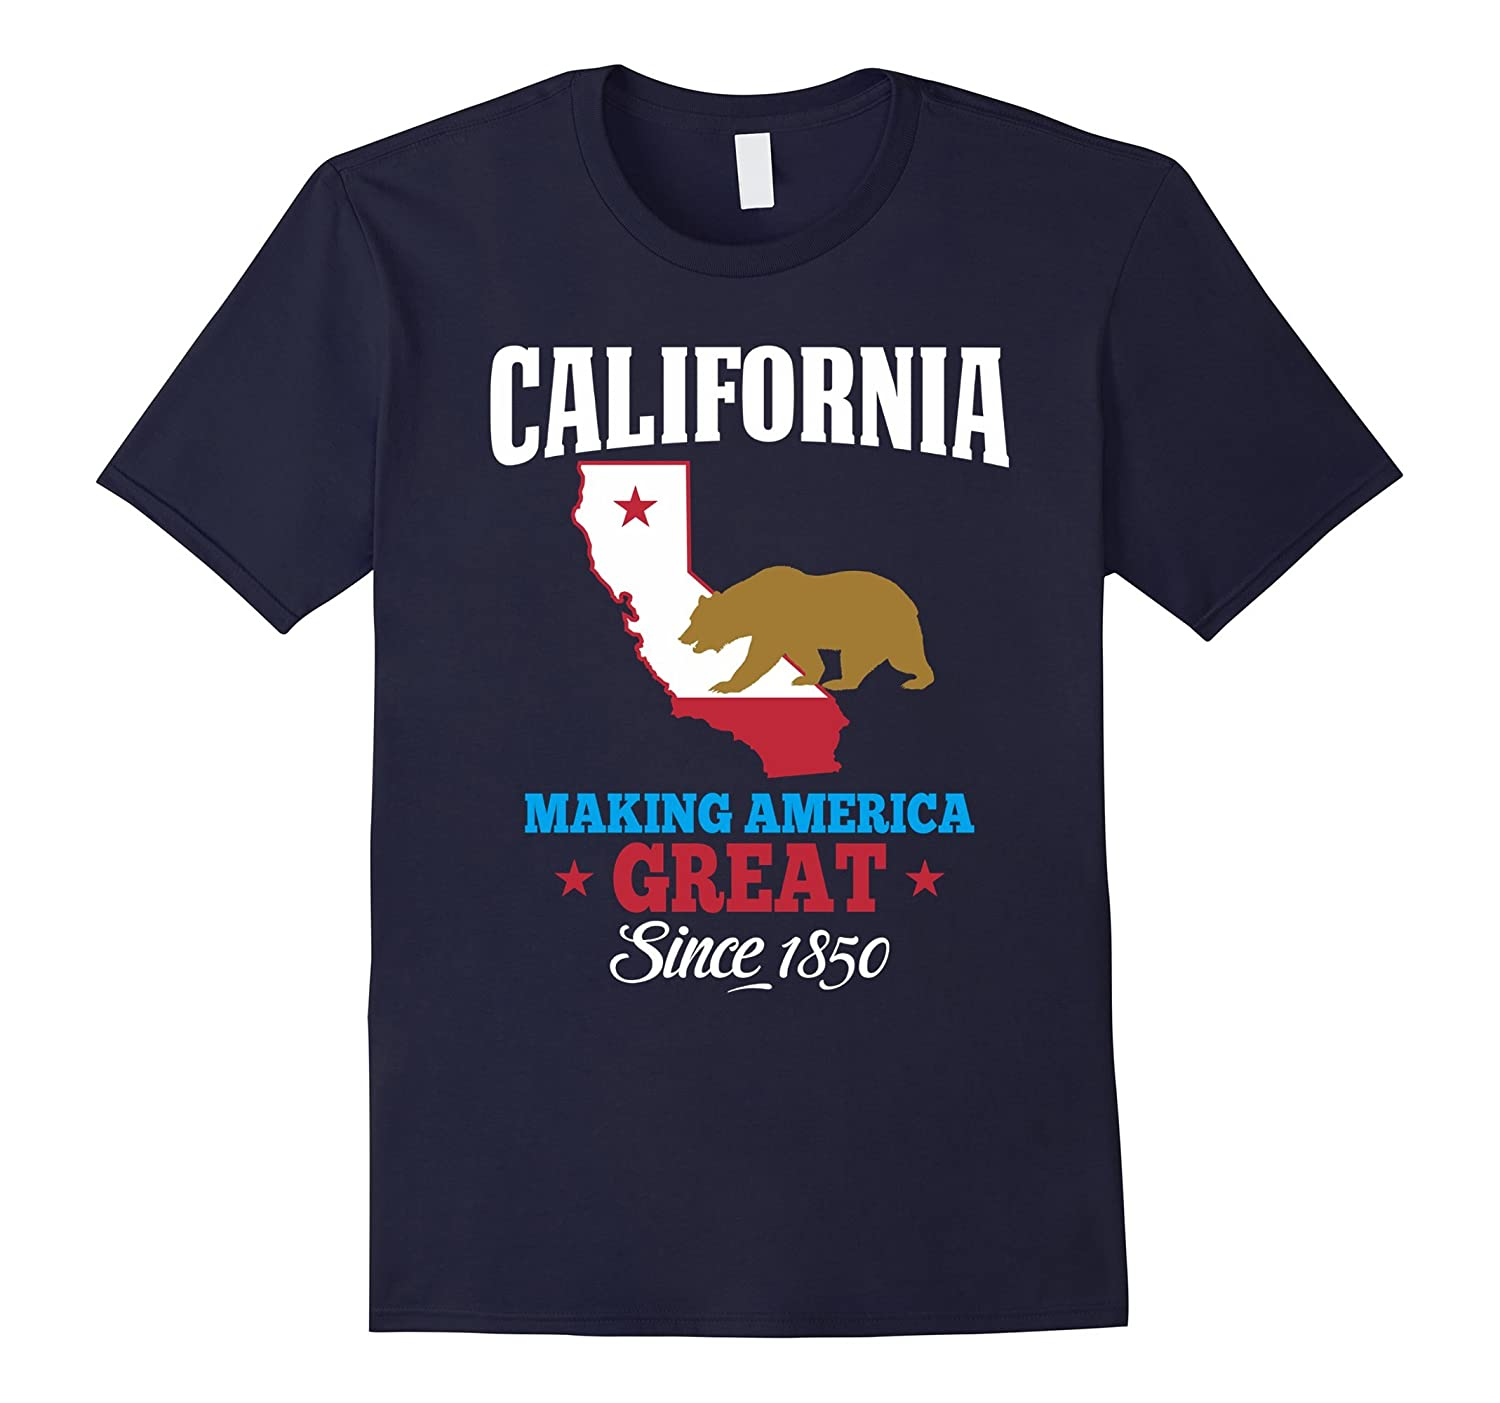 California T-shirt. Making America Great Graphic T-shirt.-FL